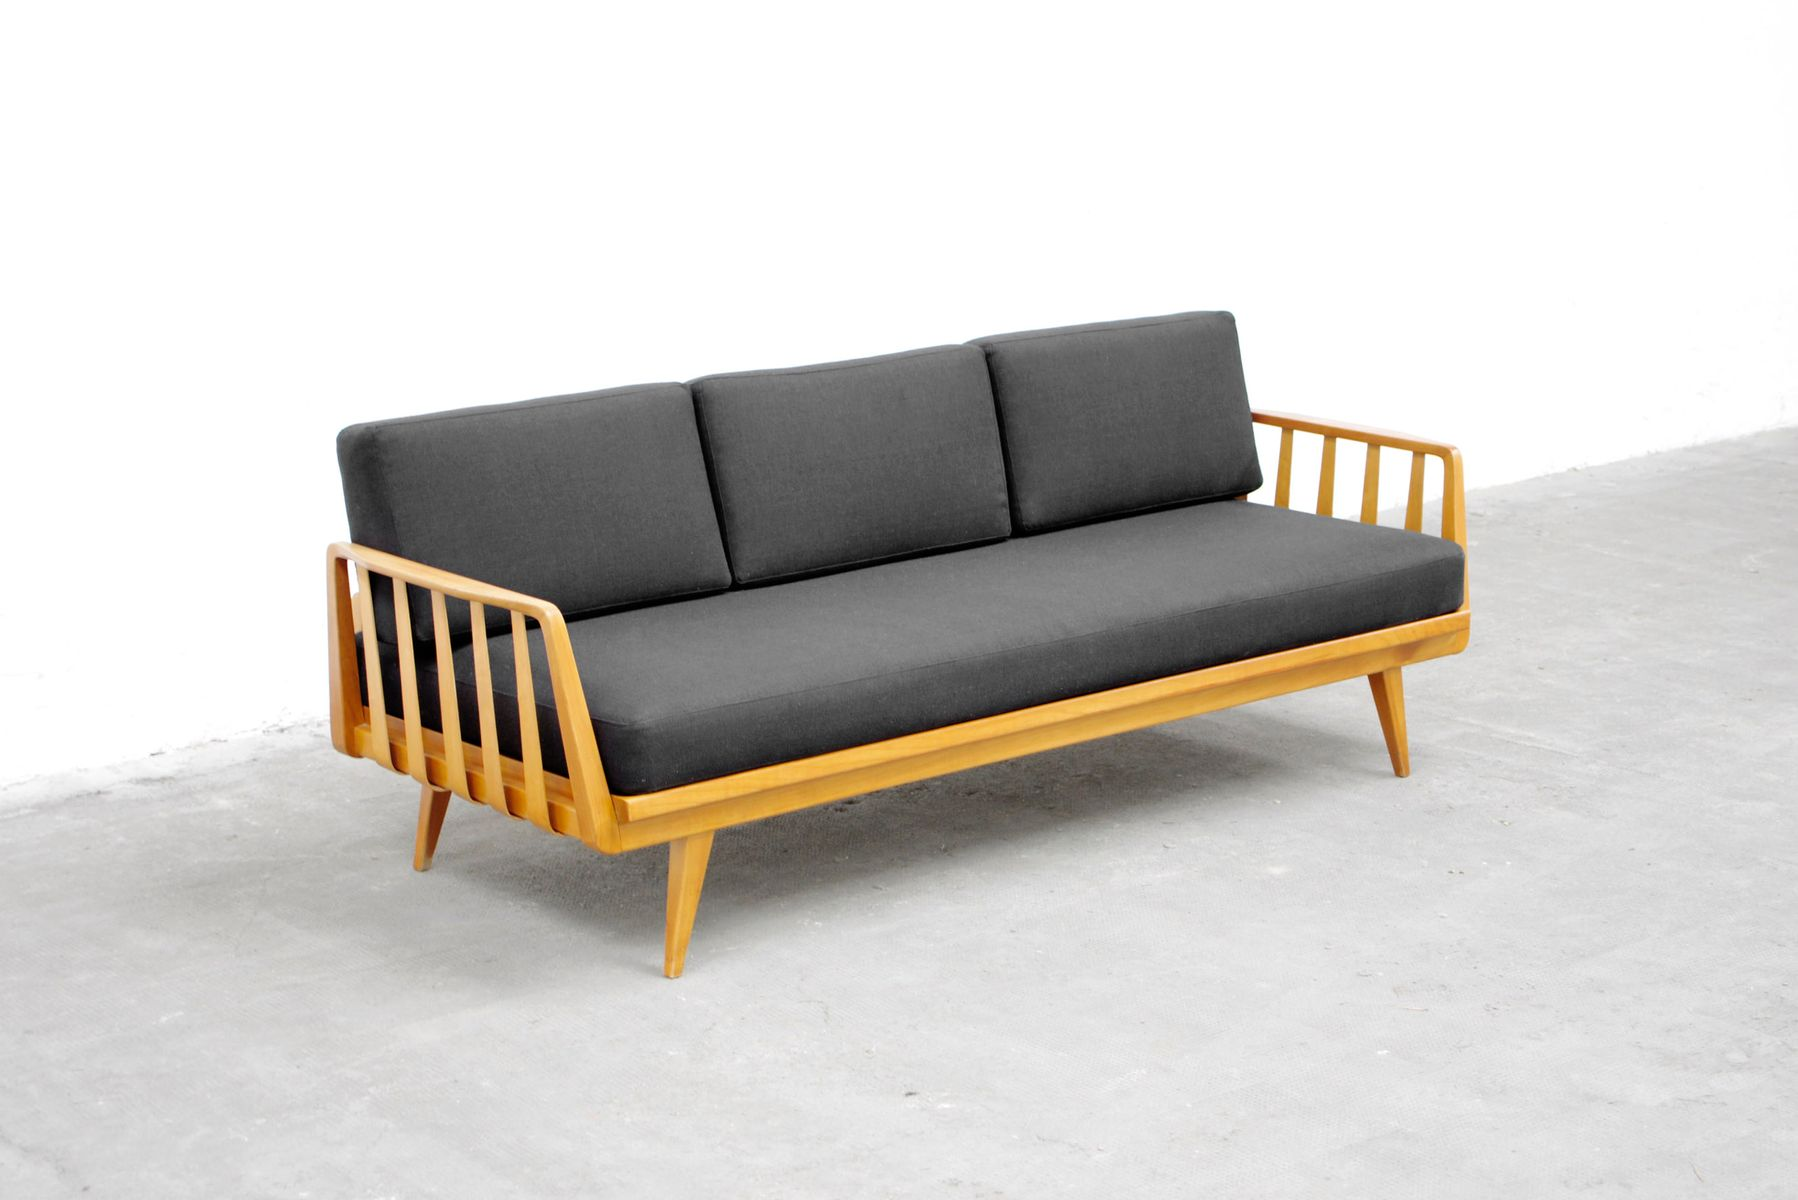 sofa liege von walter knoll f r knoll antimott 1950 bei pamono kaufen. Black Bedroom Furniture Sets. Home Design Ideas